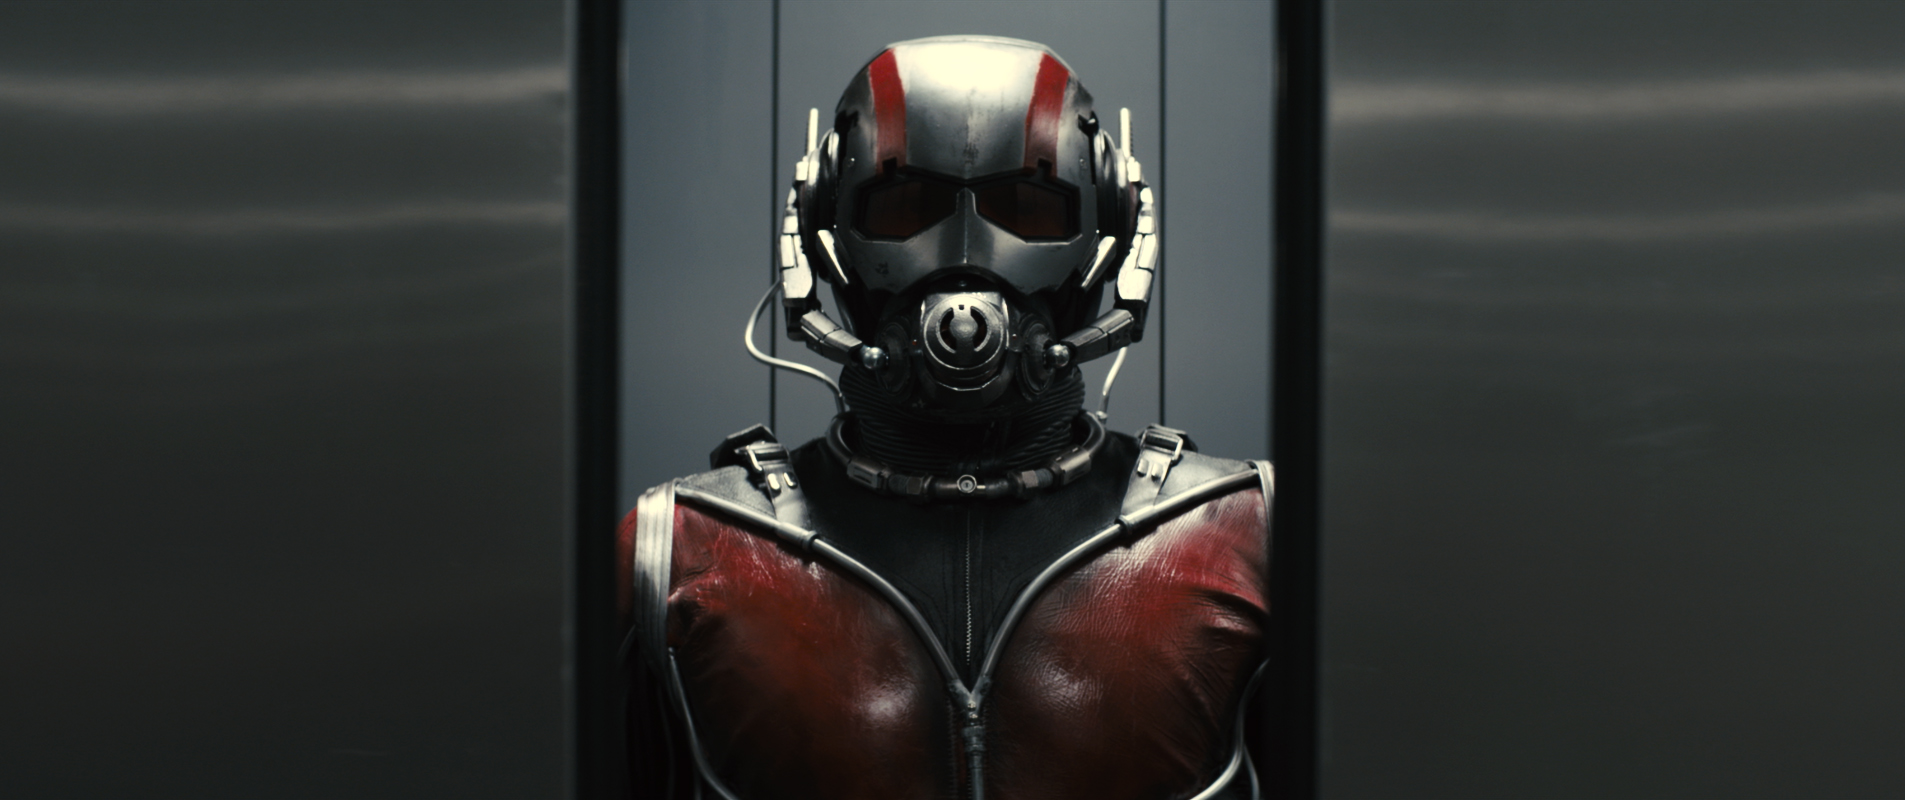 The Ant-Man suit is originally created by Dr. Hank Pym, played by Michael Douglas.